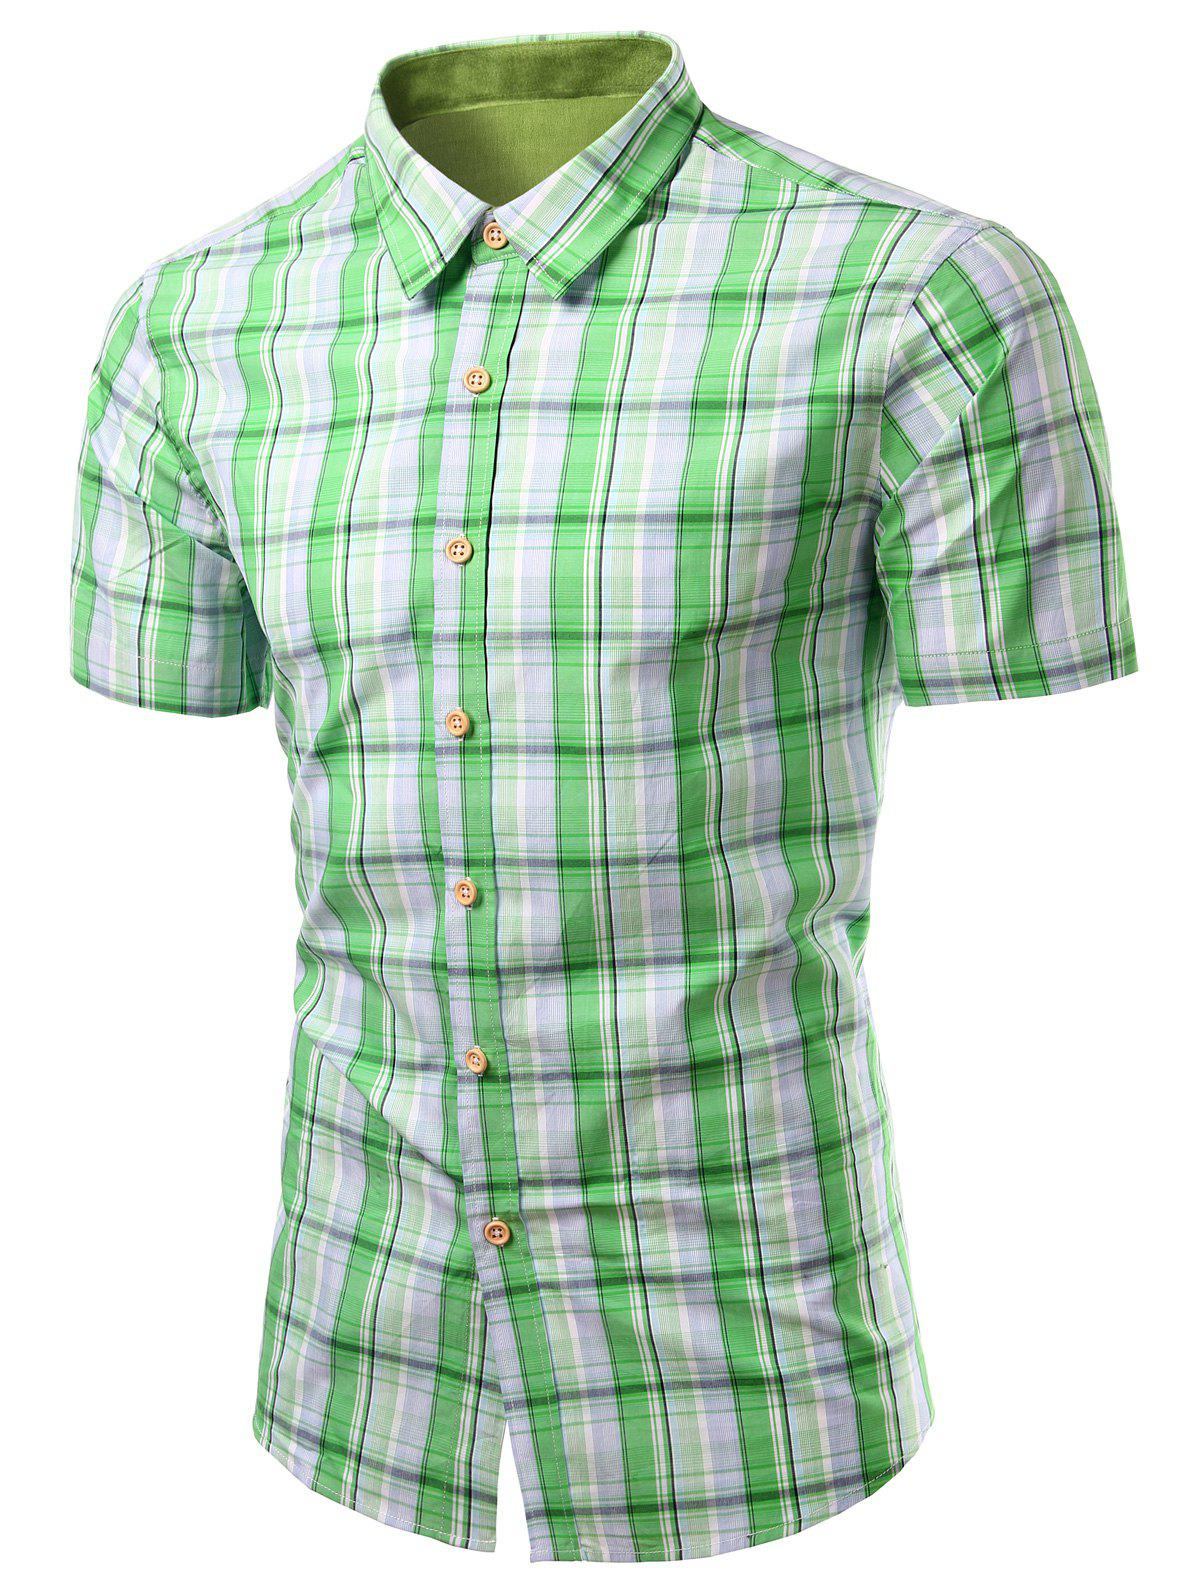 Checked Design Turn-Down Collar Short Sleeve Men's Shirt - GREEN S